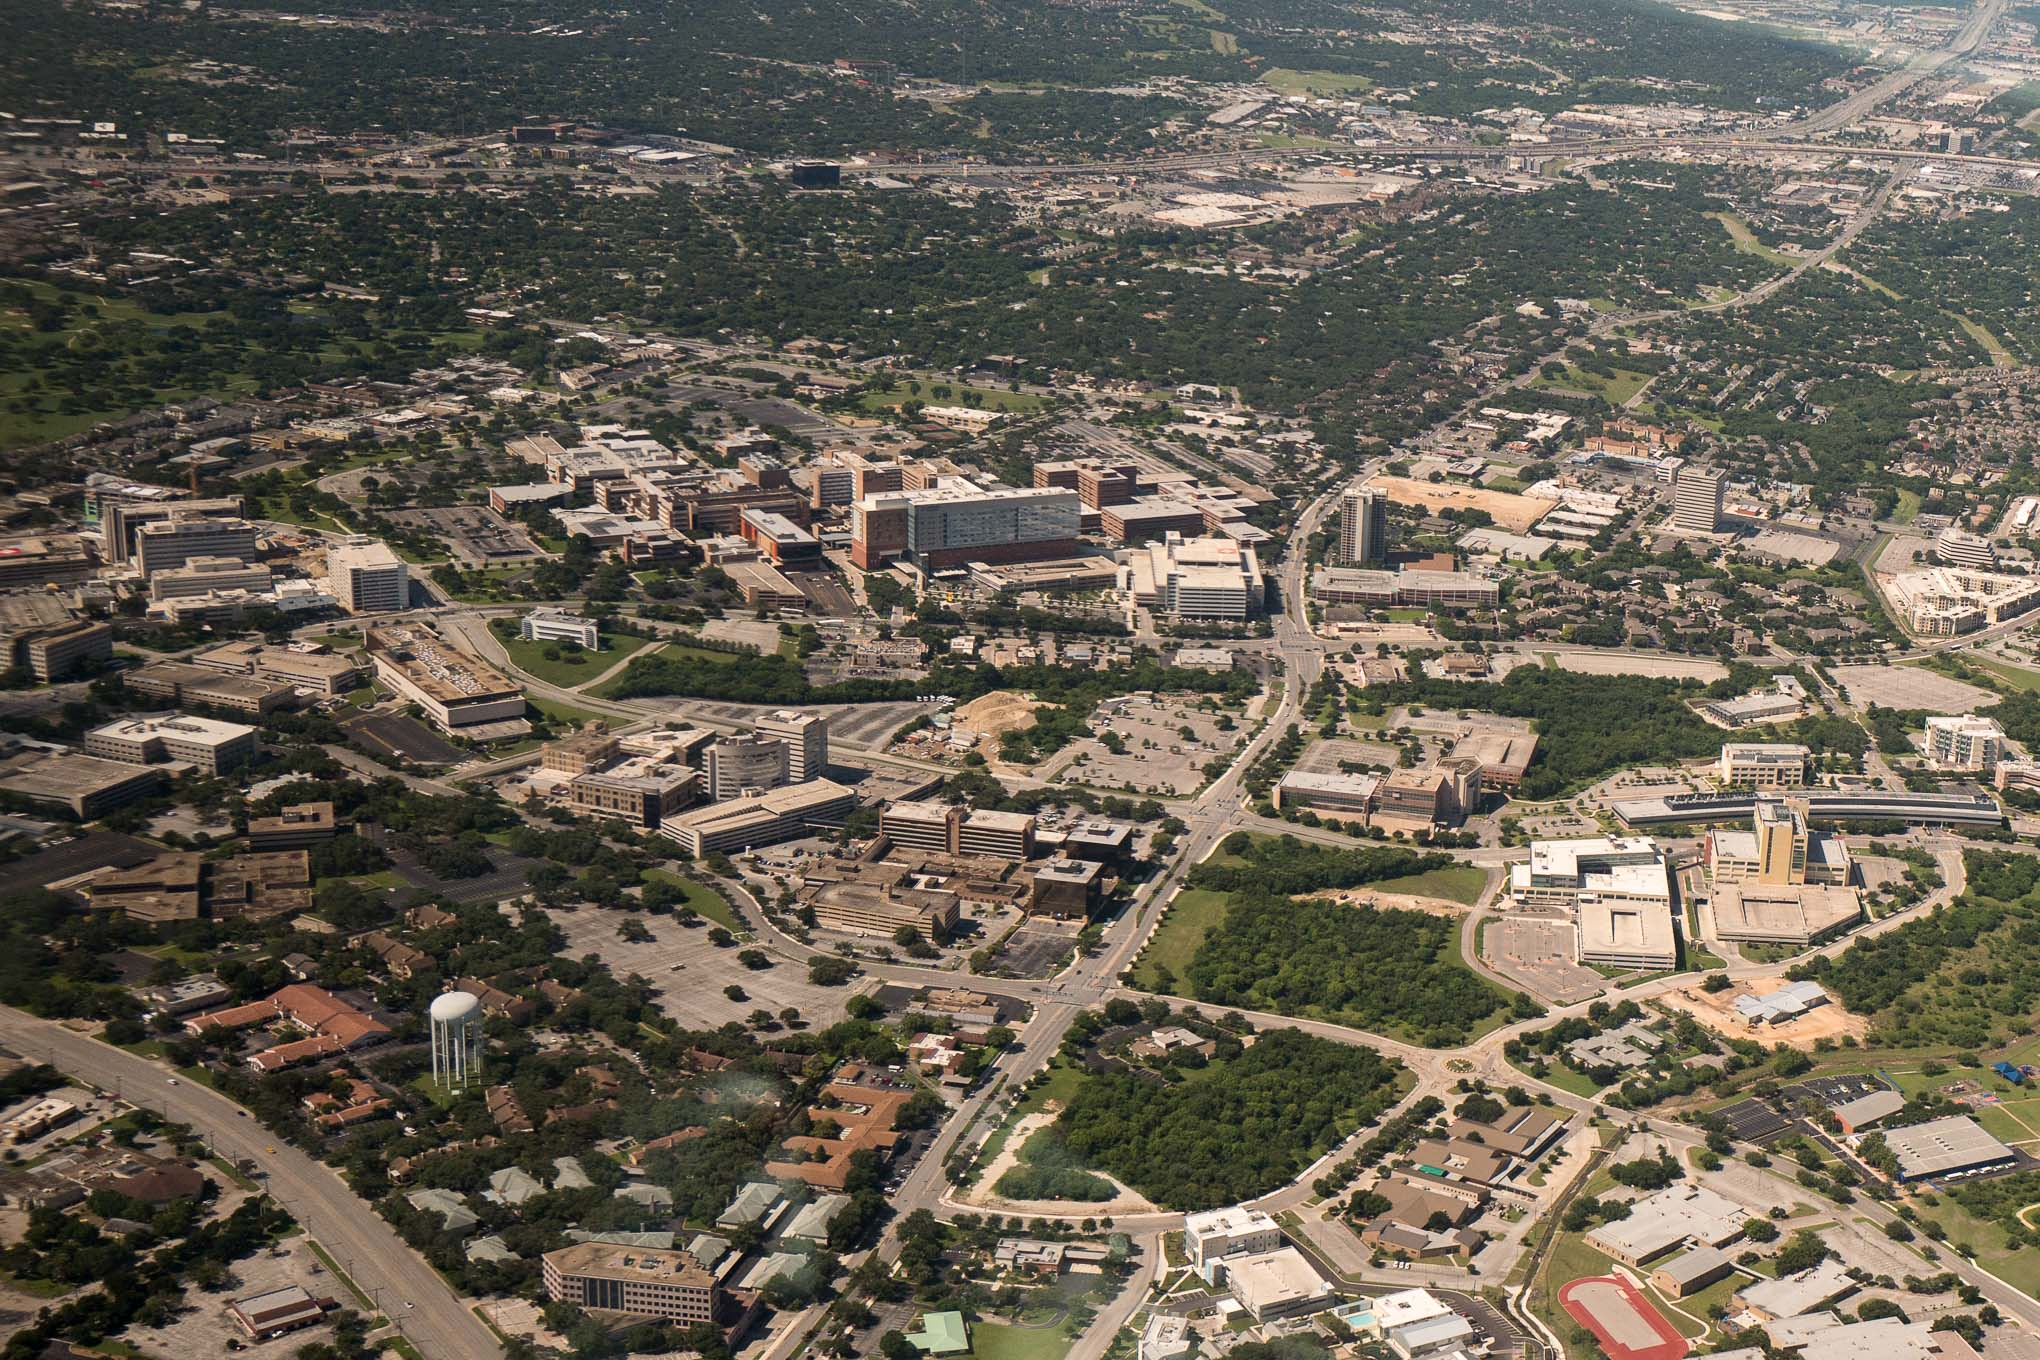 An Aerial Photograph of the South Texas Medical Center in San Antonio. Photo by Scott Ball.